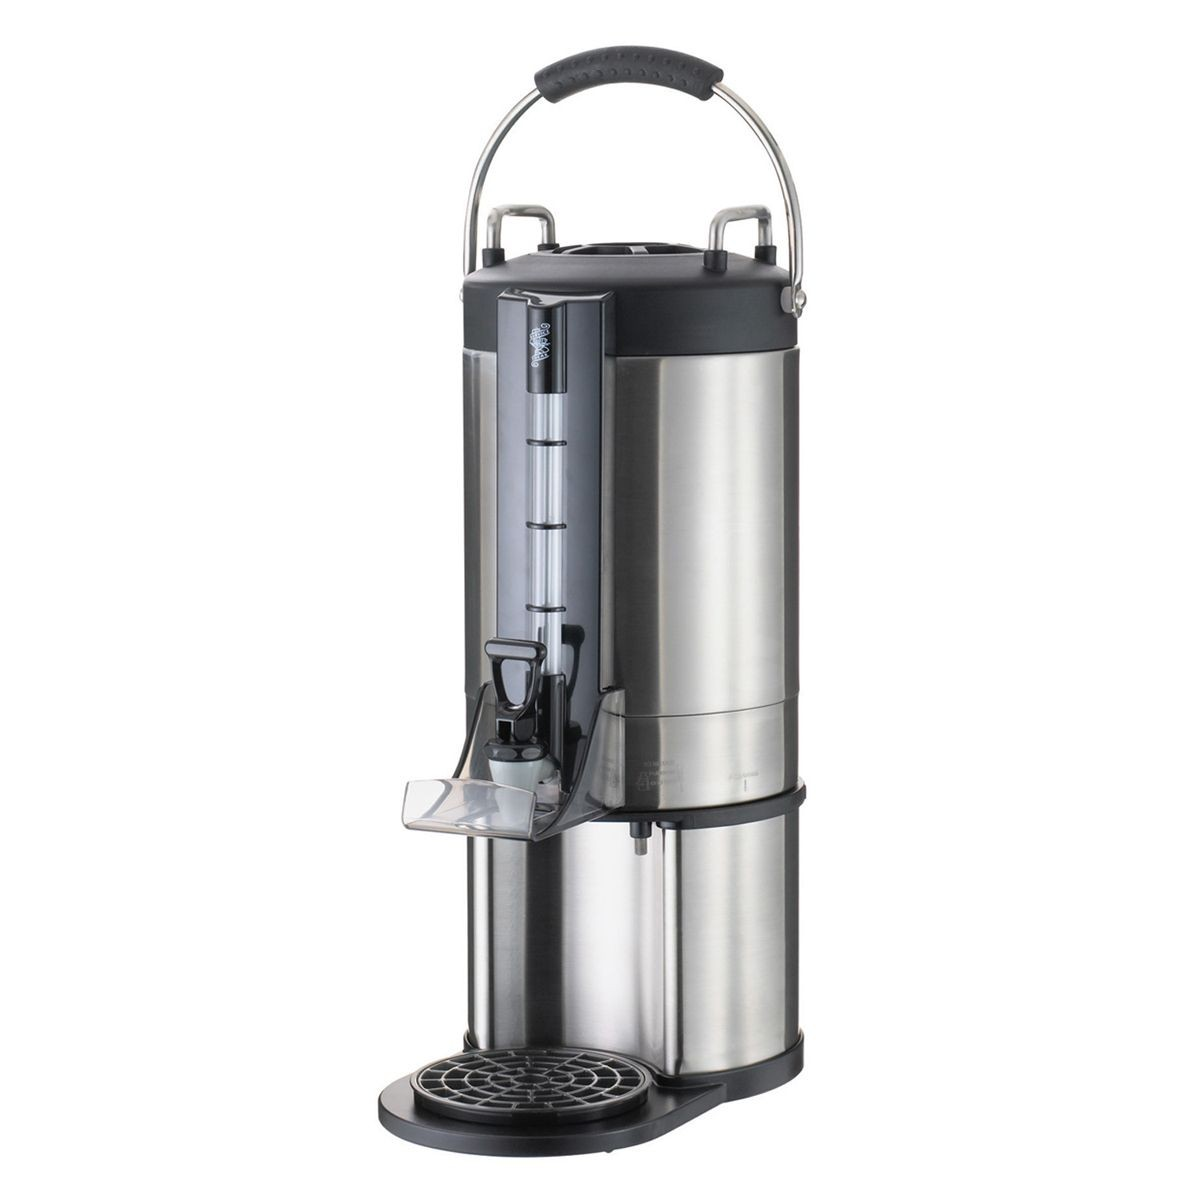 Service Ideas GIU15G Stainless Steel Thermal Beverage Dispenser, 1.5 Gallon